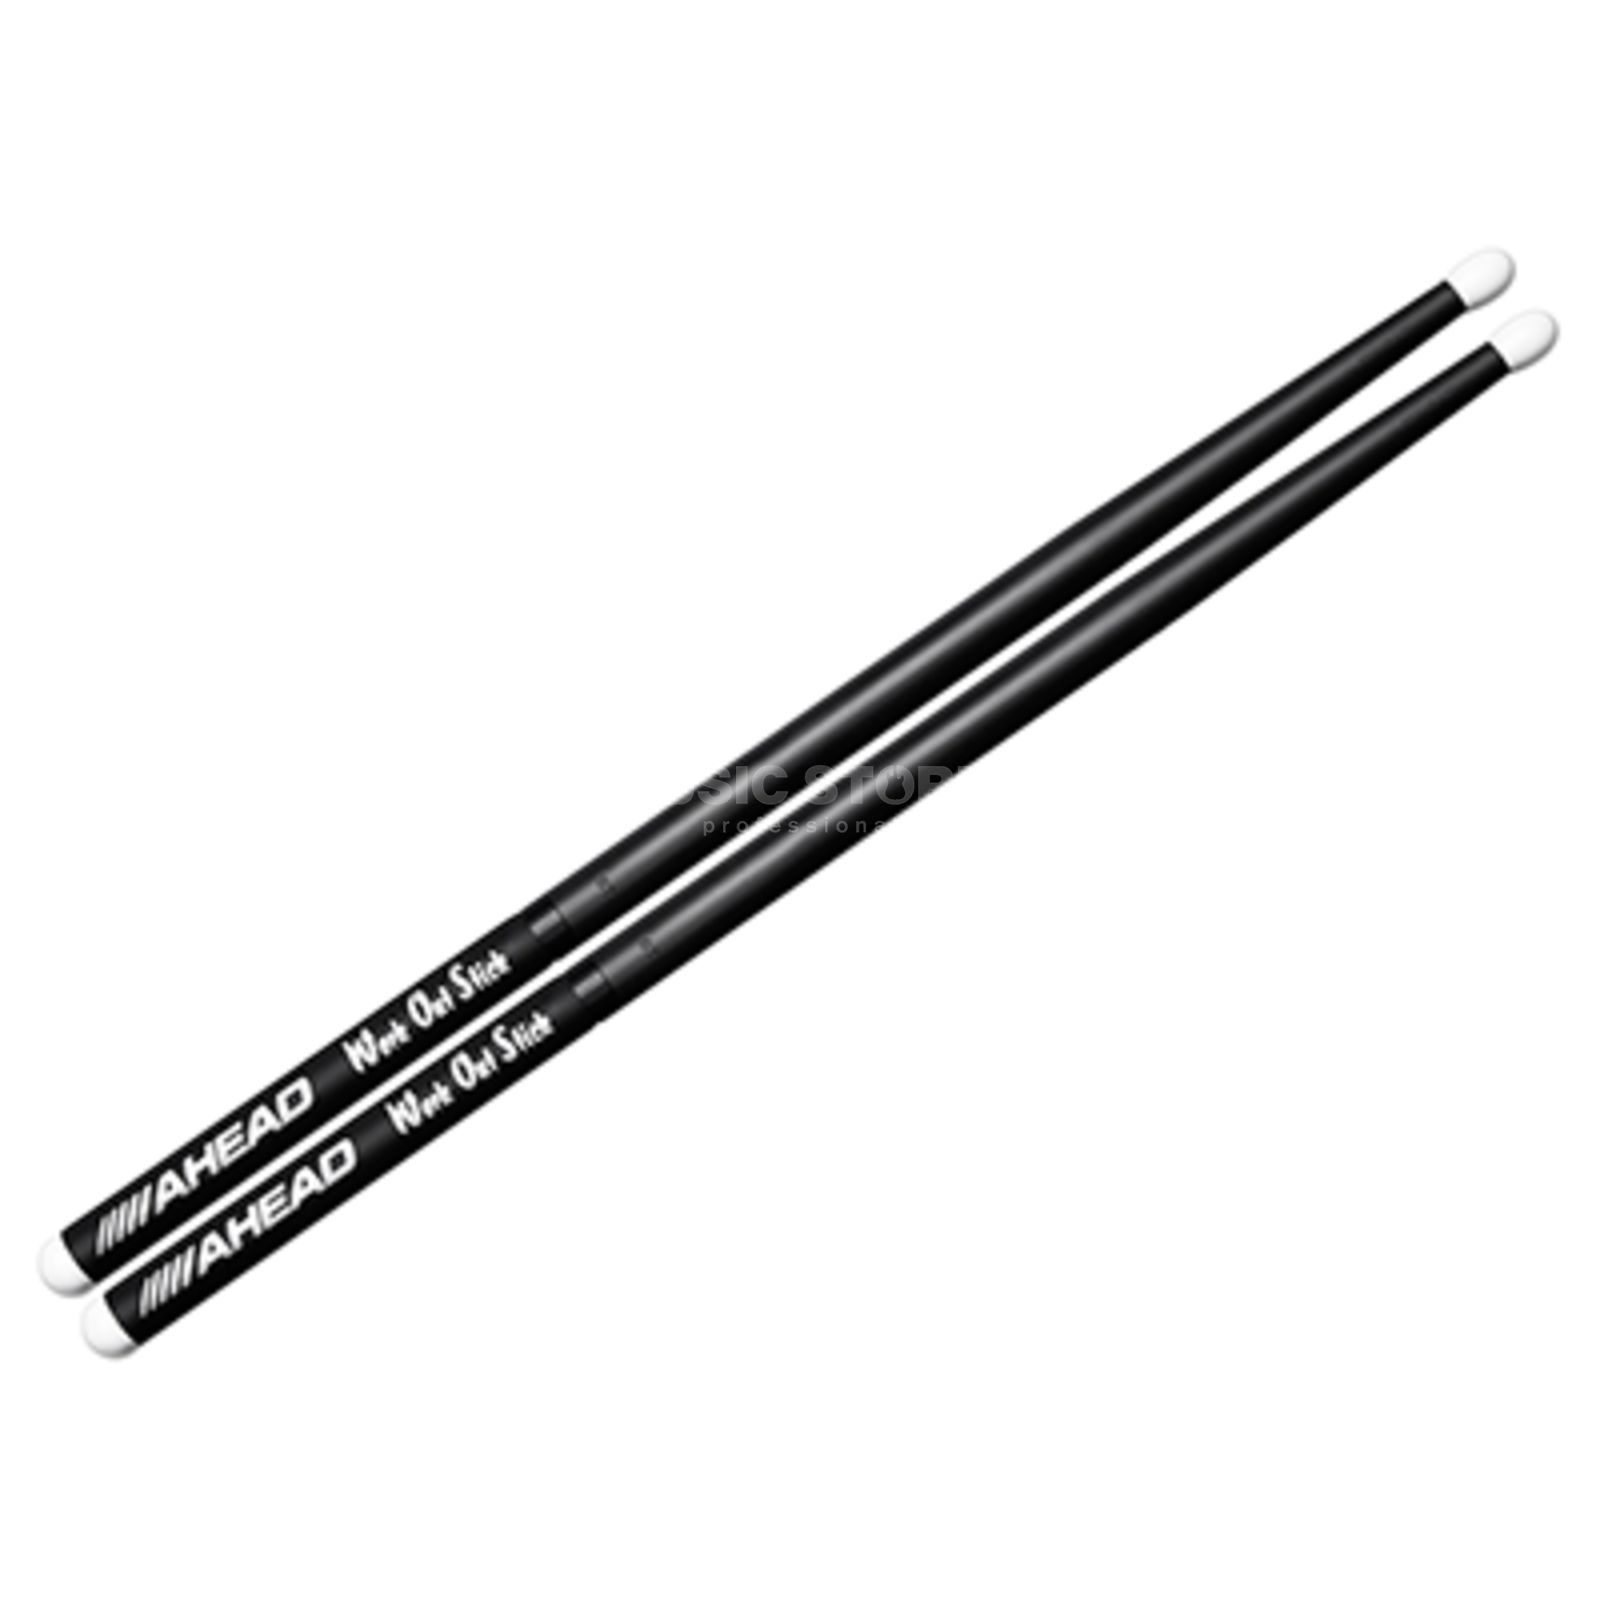 Ahead Sticks WOS Aluminium Sticks Short Taper Produktbild